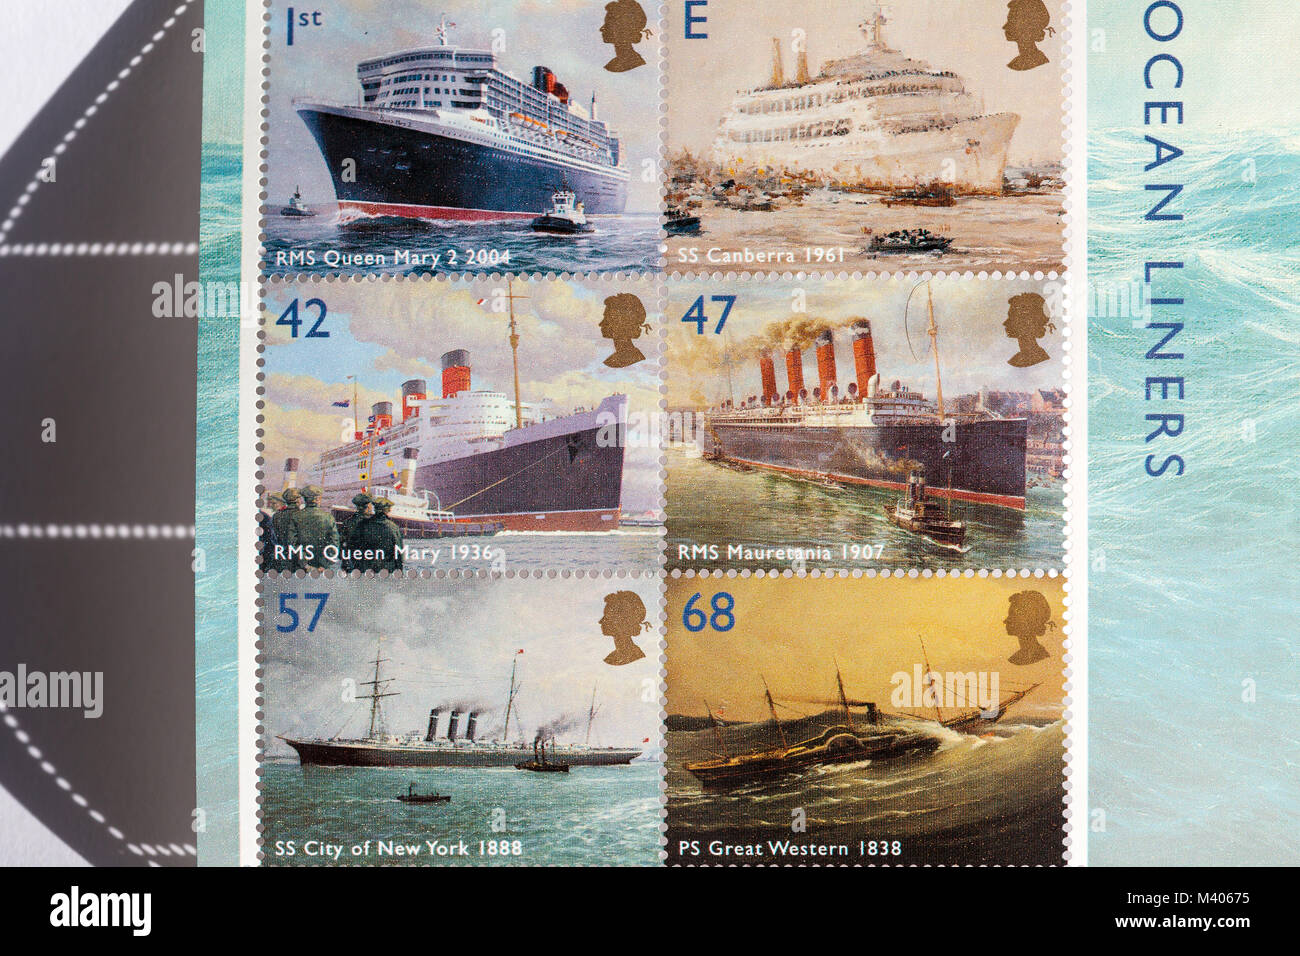 old UK postage stamps showing old and new ocean liners - Stock Image